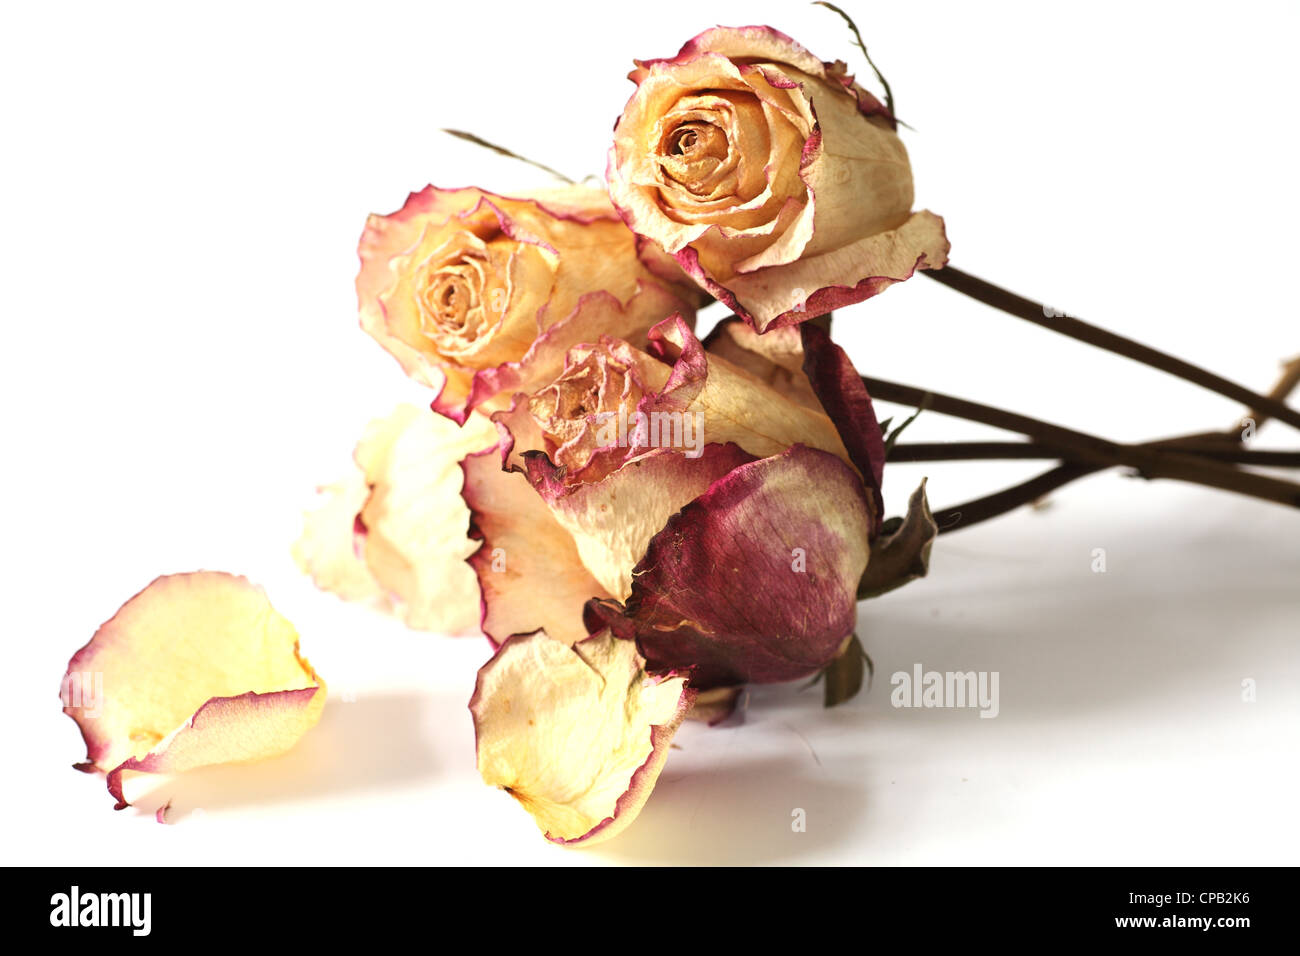 bunch of dry roses against a white background - Stock Image